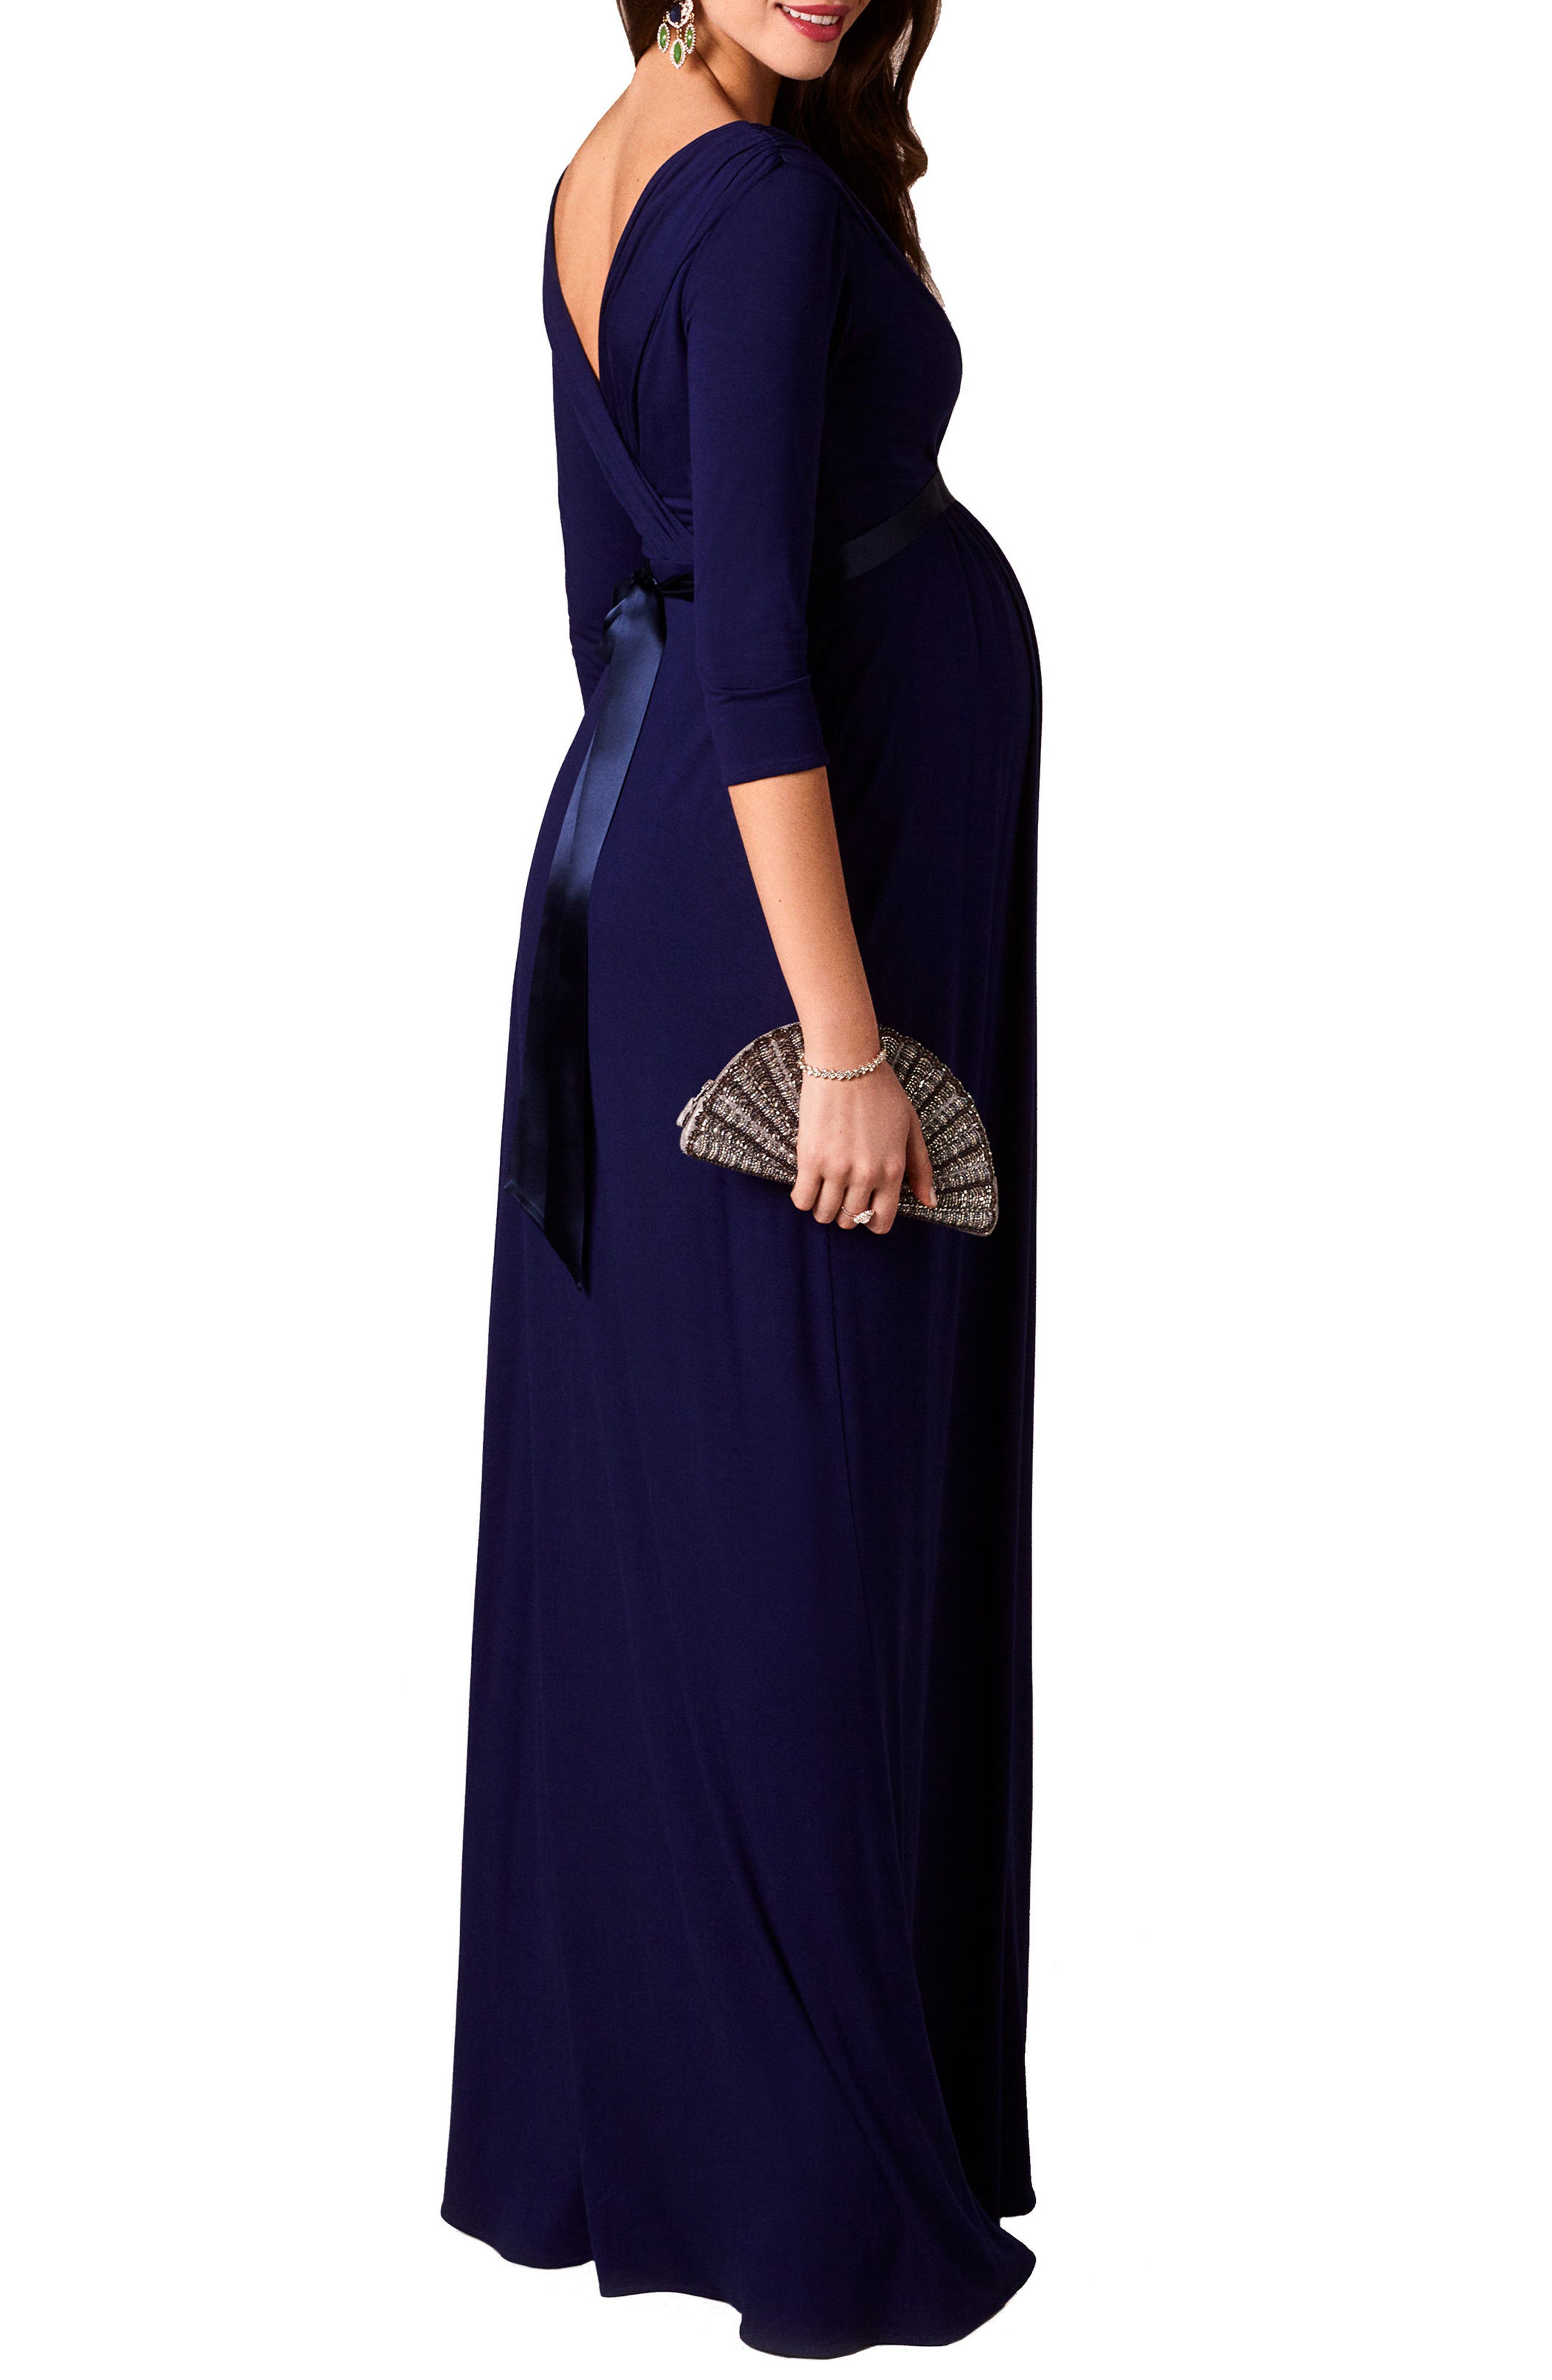 Willow Maternity Gown,                             Alternate thumbnail 2, color,                             Eclipse Blue